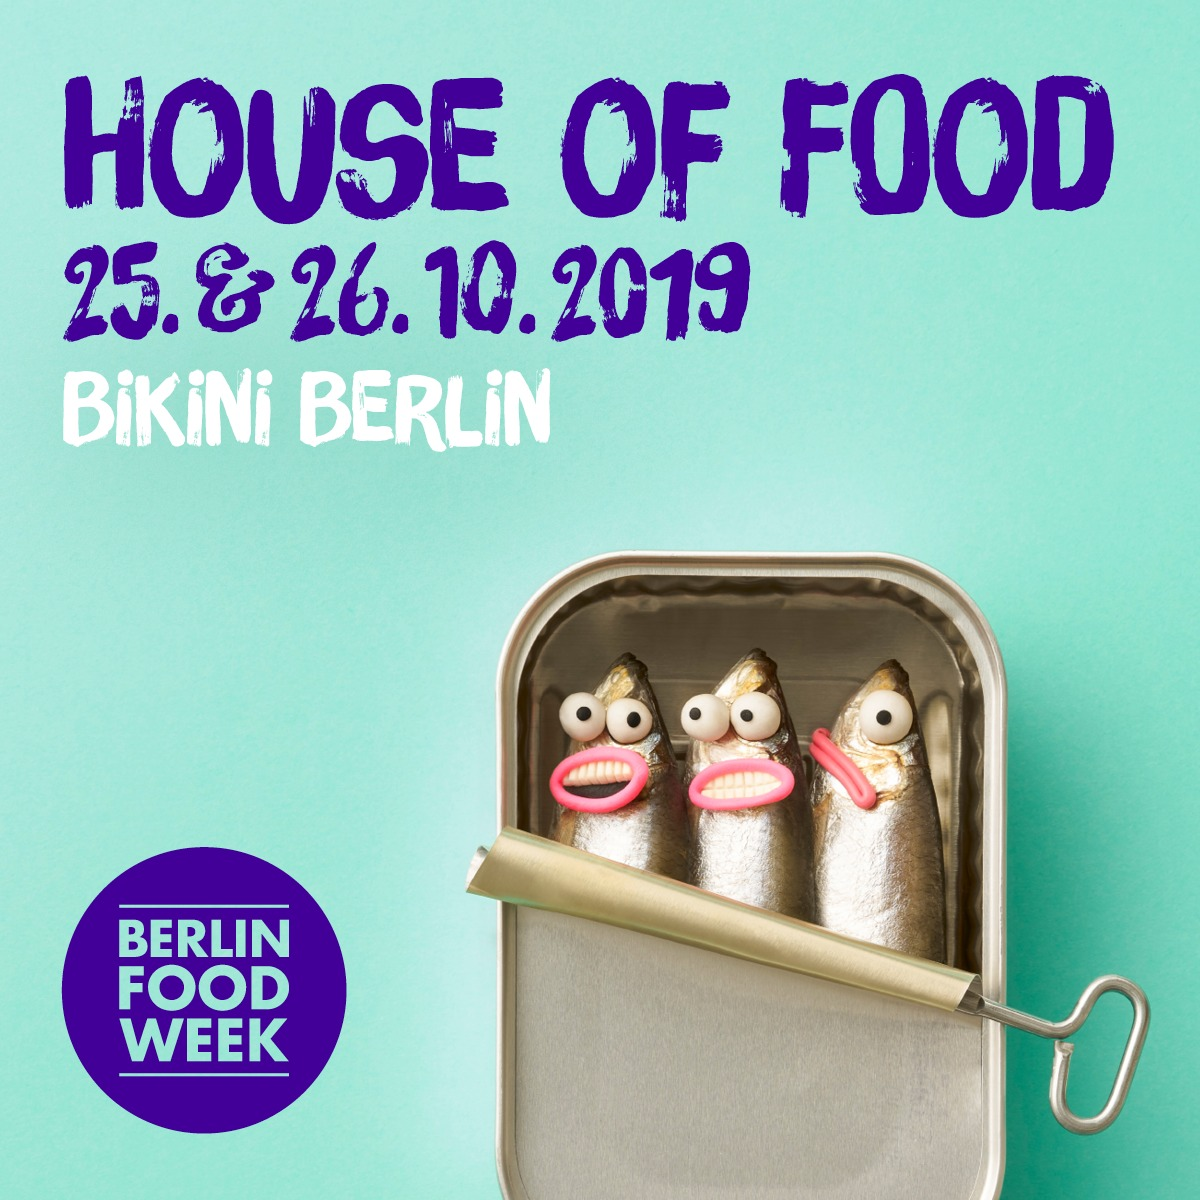 House of Food im Bikin Berlin